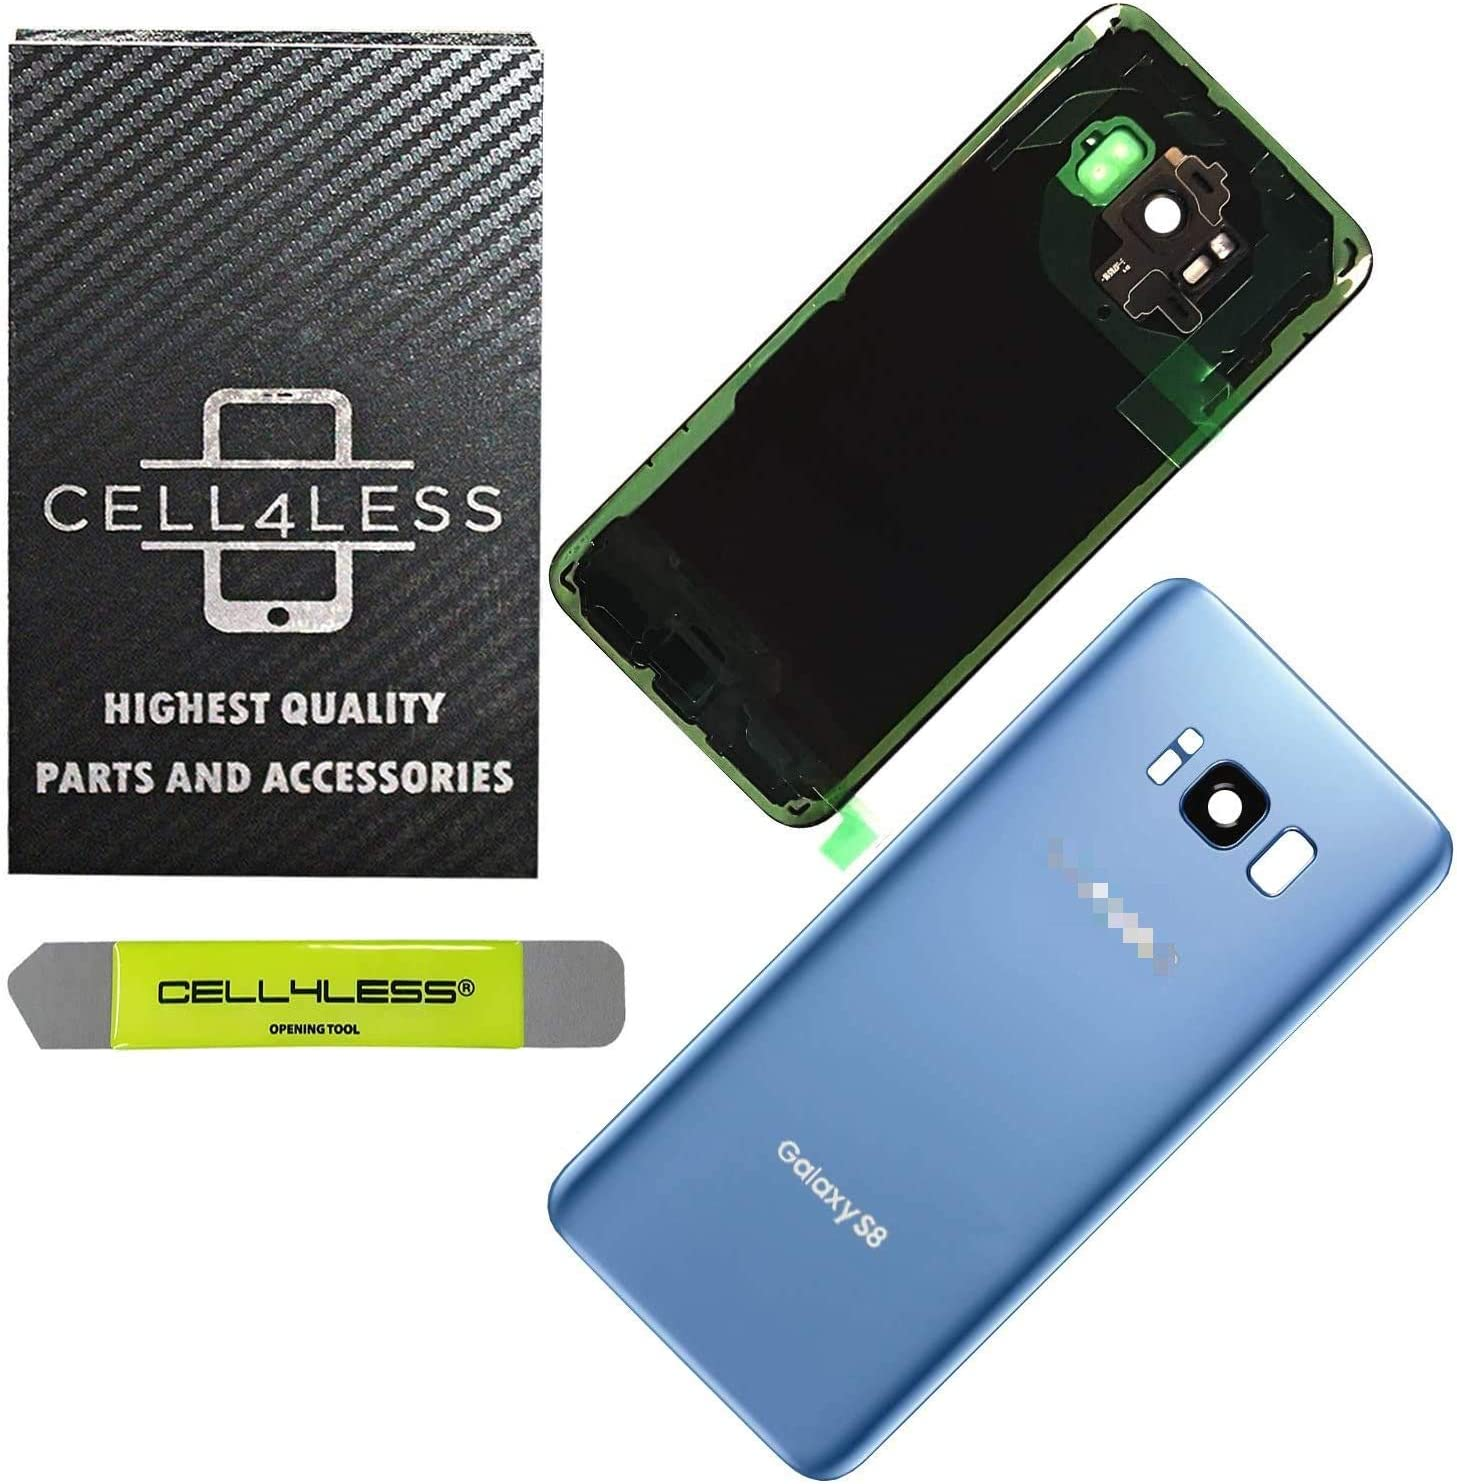 CELL4LESS Replacement Back Glass Cover Back Door w/Pre-Installed Camera Lens/Frame, Adhesive & Removal Tool Samsung Galaxy S8 - All Models G950 All Carriers (Blue)